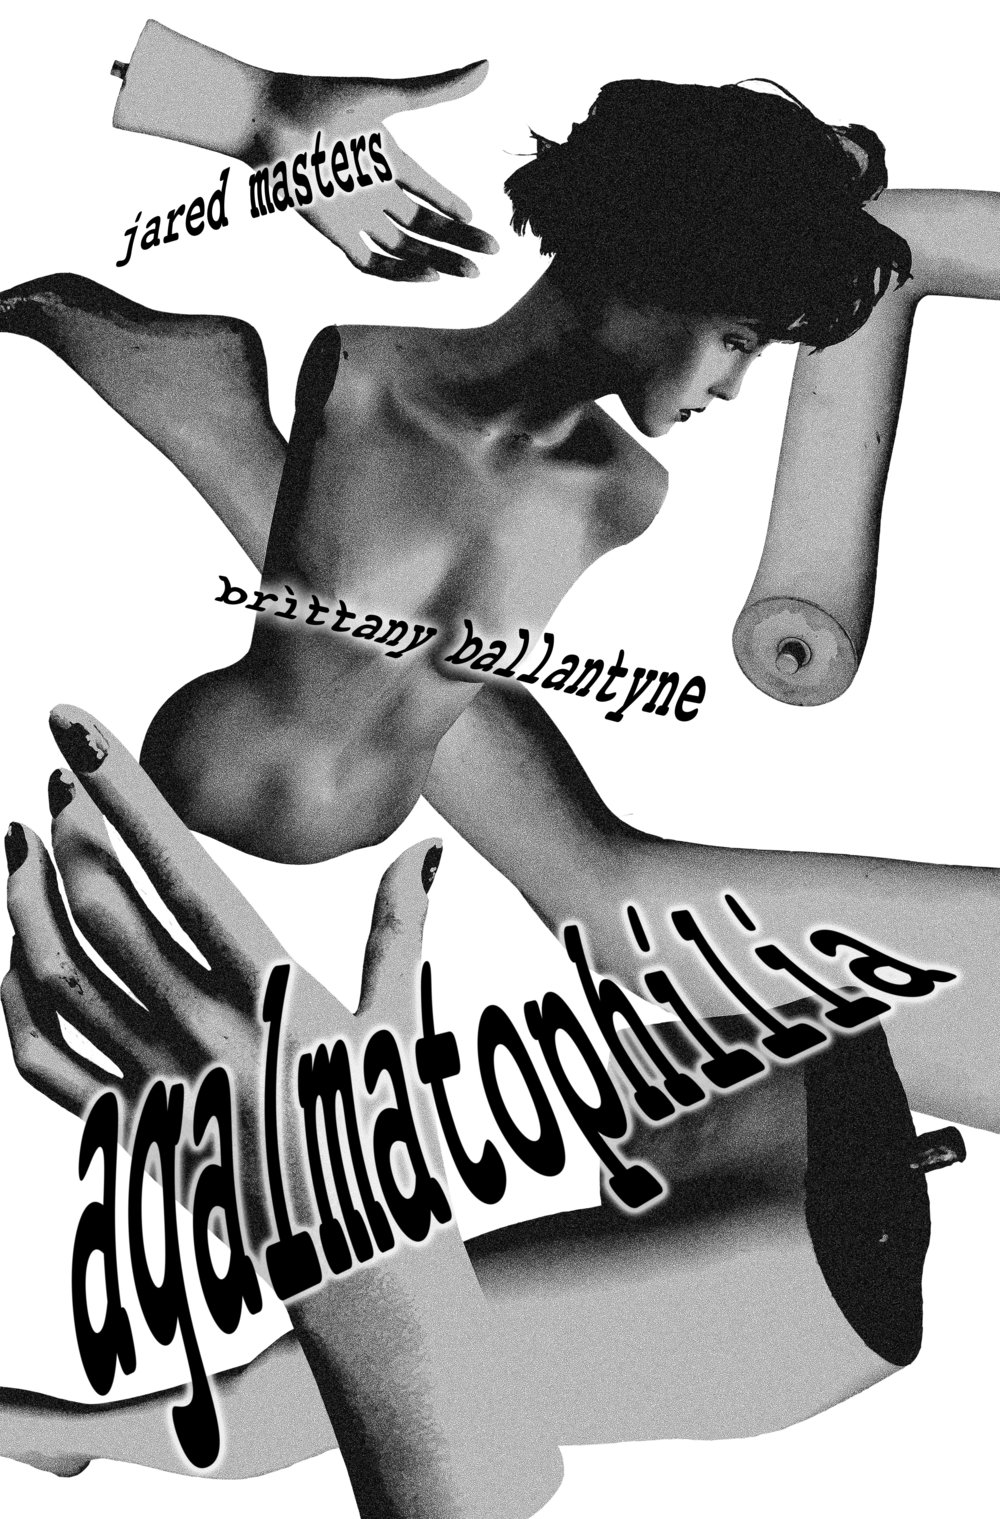 Agalmatophilia (pronounced A-GAL-MATTO-PHILIA,is a paraphilia involving sexual attraction to a statue, doll, mannequin) is the story of Guy Talbot, an isolated workaholic who seeks a secretary to help manage his life and business. He hires his first applicant, Iesha Stayput, who oddly enough appears to be a living, breathing mannequin. She aides him in business affairs, slowly but surely, but her professionalism quickly becomes secondary to Guy's ulterior motives… Complicating matters is his vivacious client, Veronique, who swoons over Guy, perhaps as a curiously, frustrated about his lack of interest in her and obvious growing obsession with his new co-worker, who may or may not be little more than a twisted fantasy, forced into fruition. Can Guy find happiness with a moving, speaking mannequin, or will he finally fall for Veronique, who may have an odd obsession of her own?